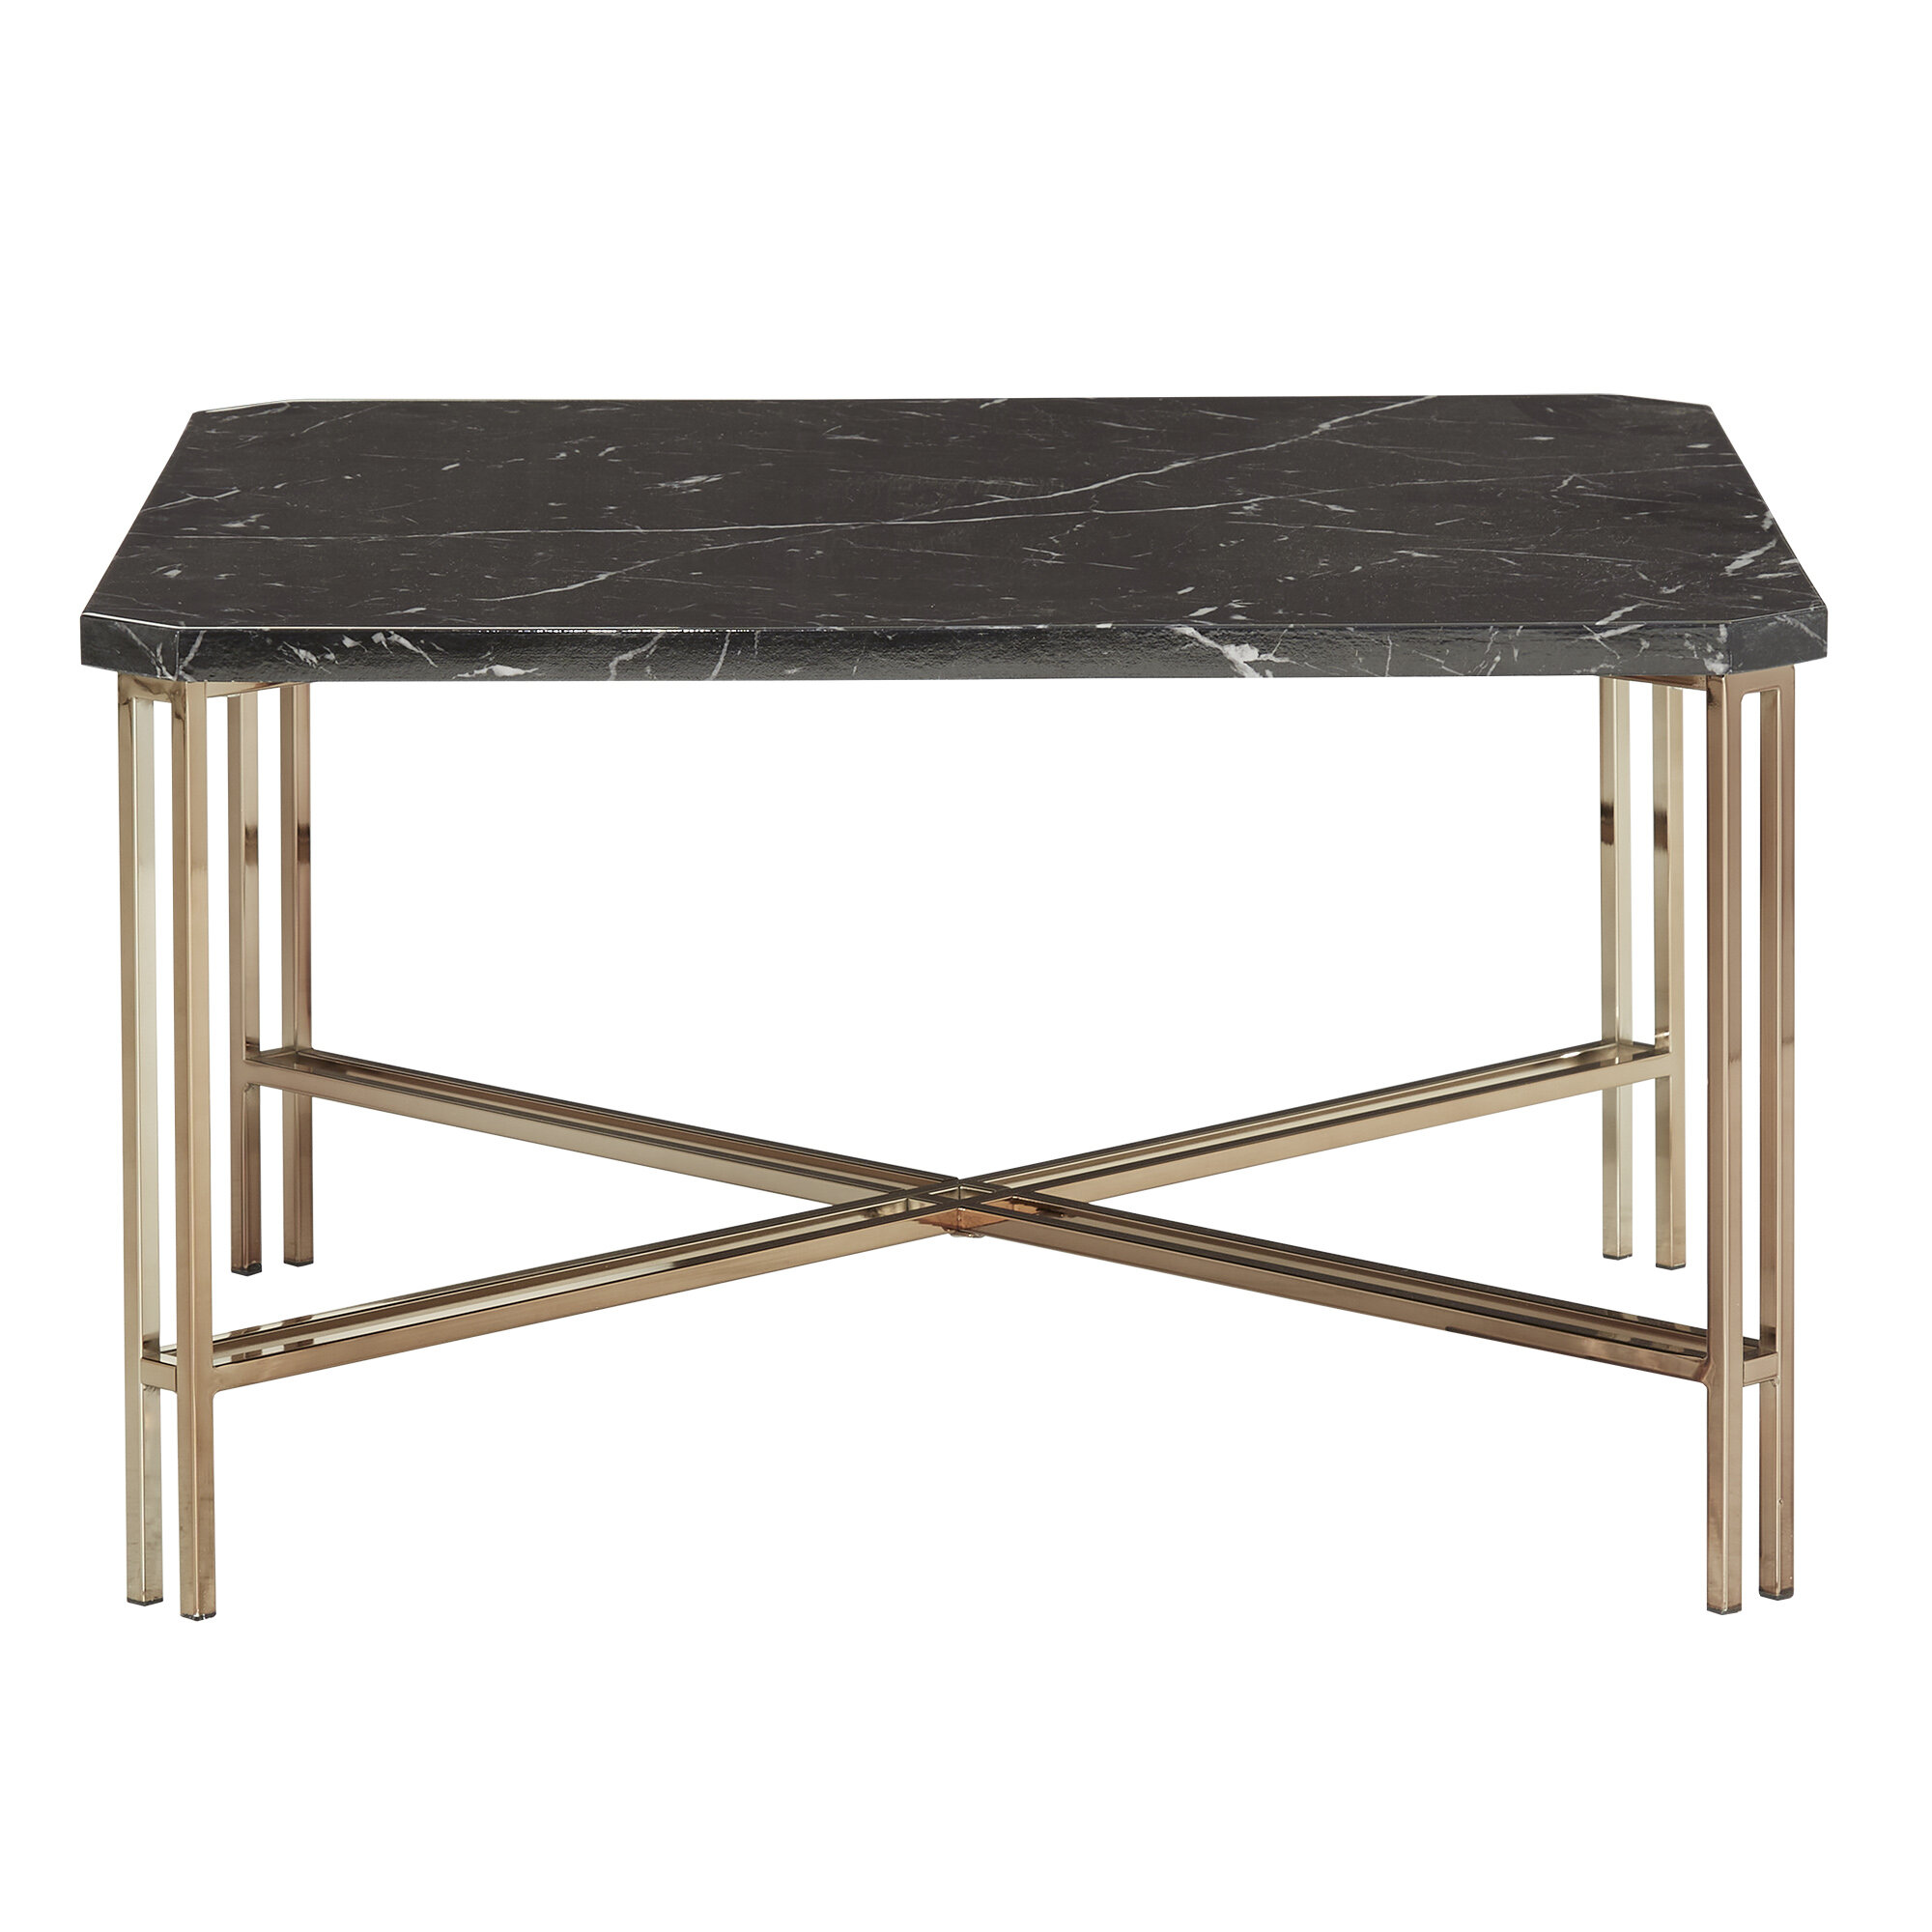 Mercer41 Champagne Gold Finish Cocktail Table With Black Faux Marble Top Wayfair Ca